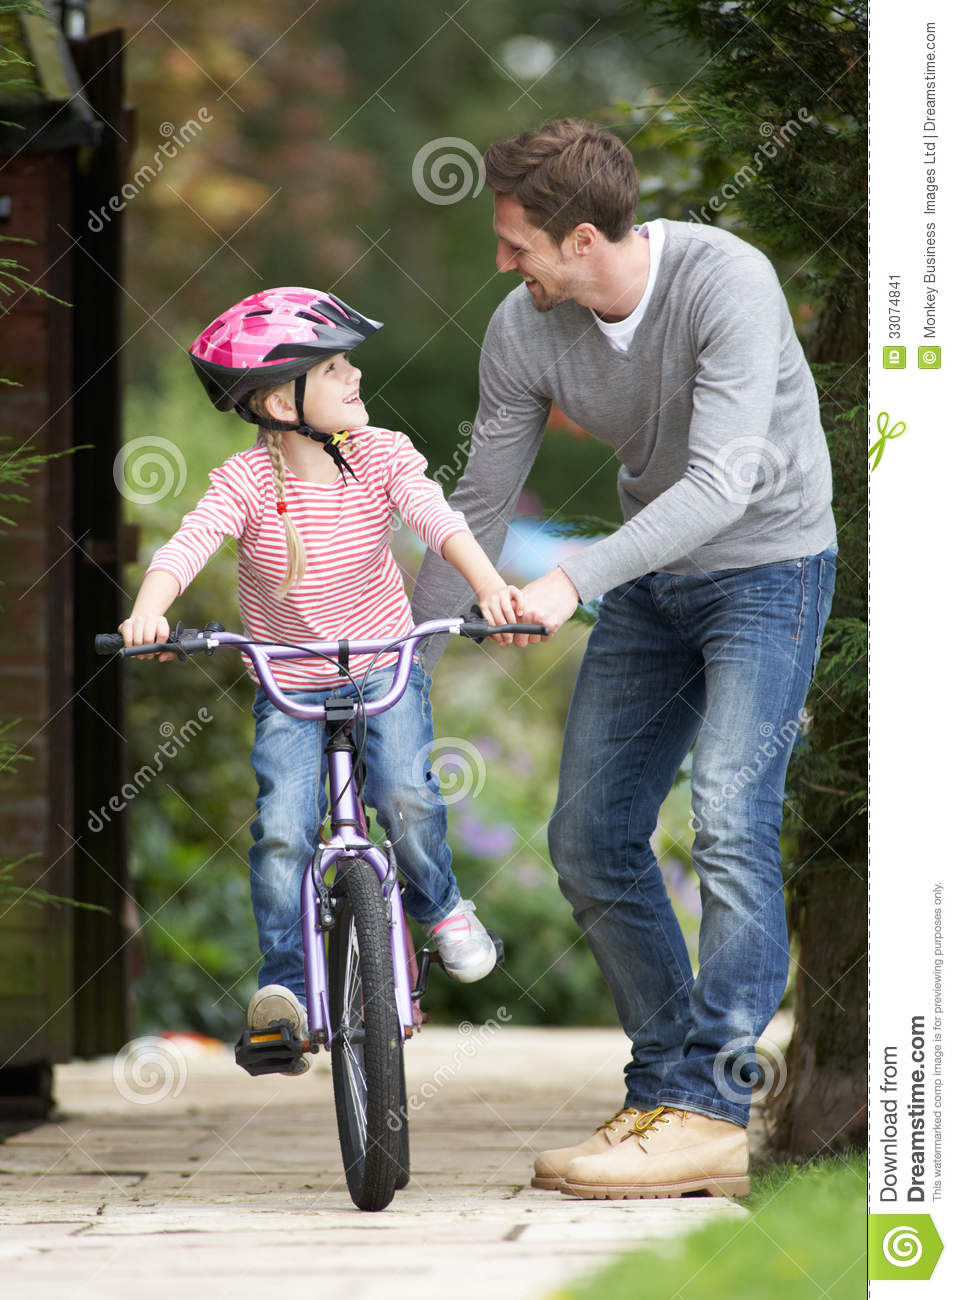 Father Teaching Daughter To Ride Bike In Garden Stock